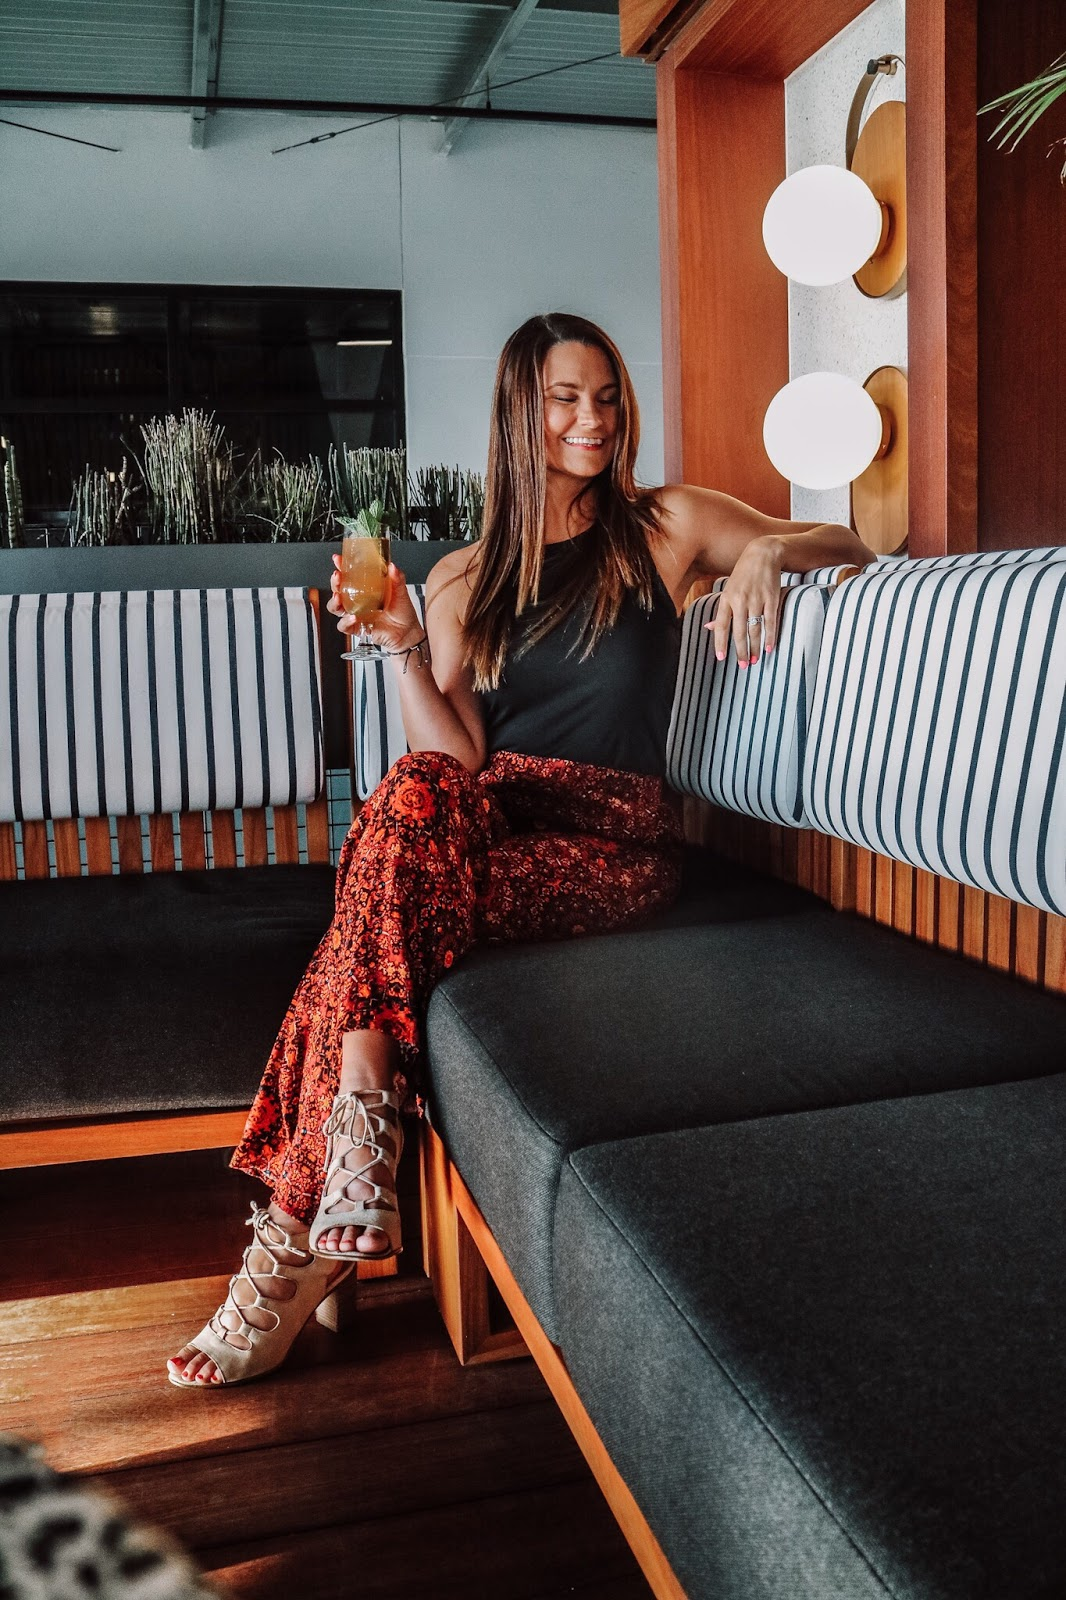 Tampa Bay blogger enjoying drinks at M.Bird, the new rooftop bar on top of Armature Works in Tampa, Florida